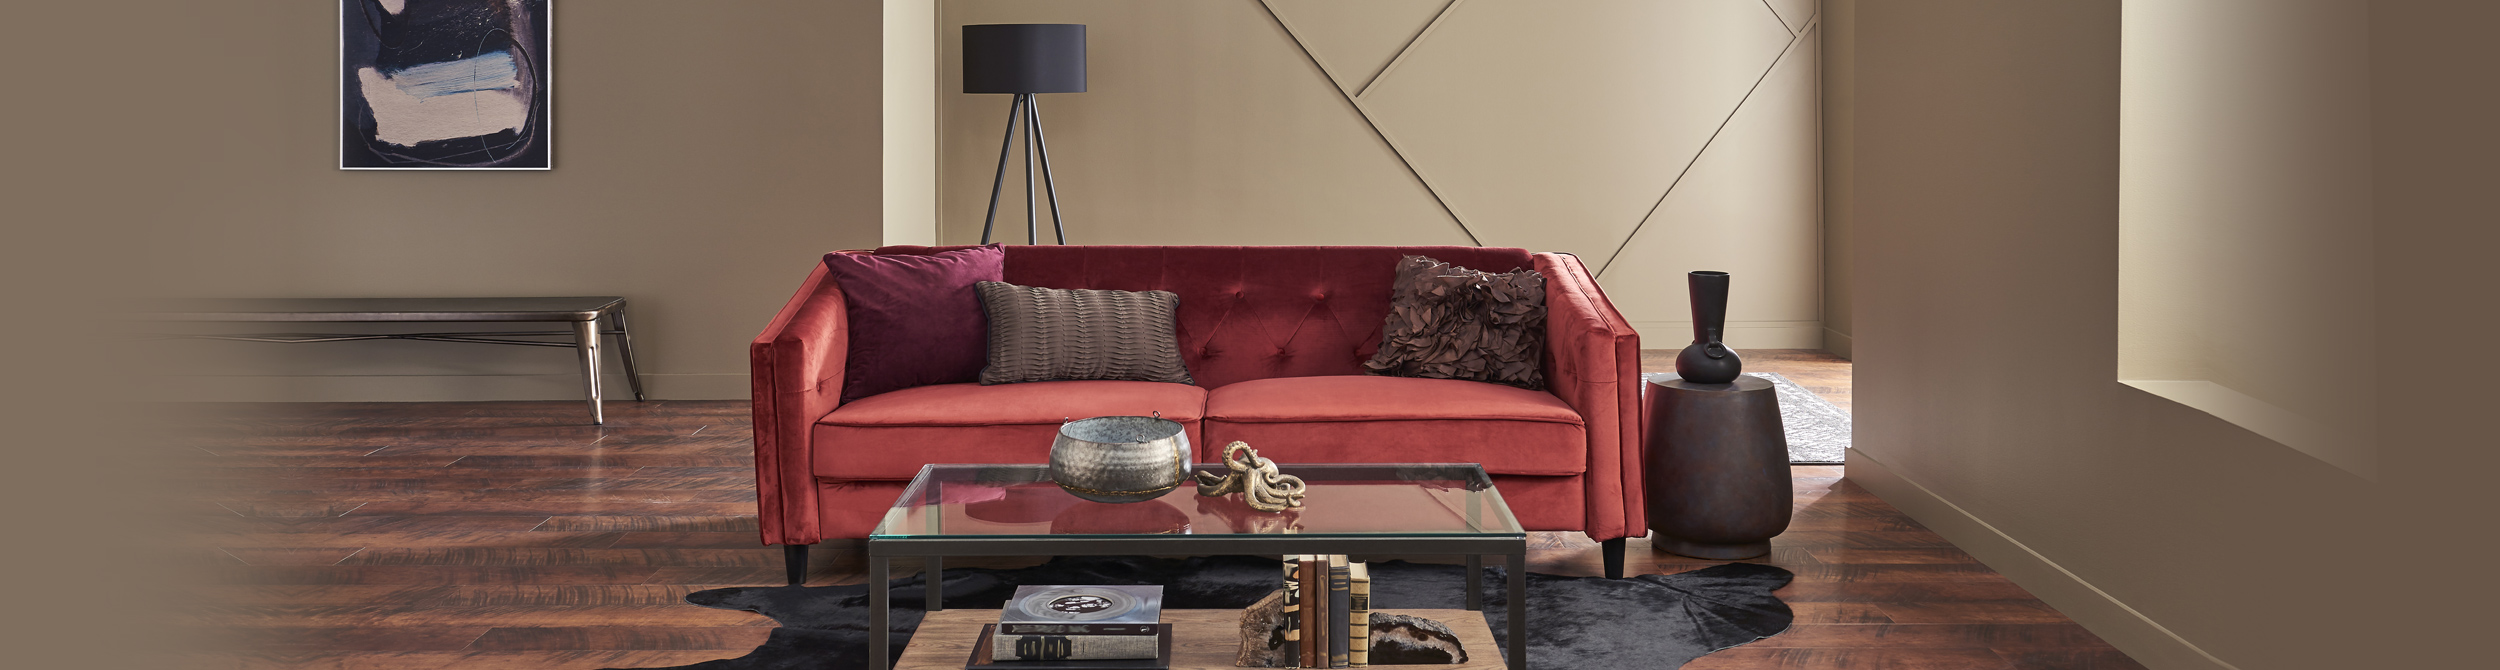 Living room with a red sofa